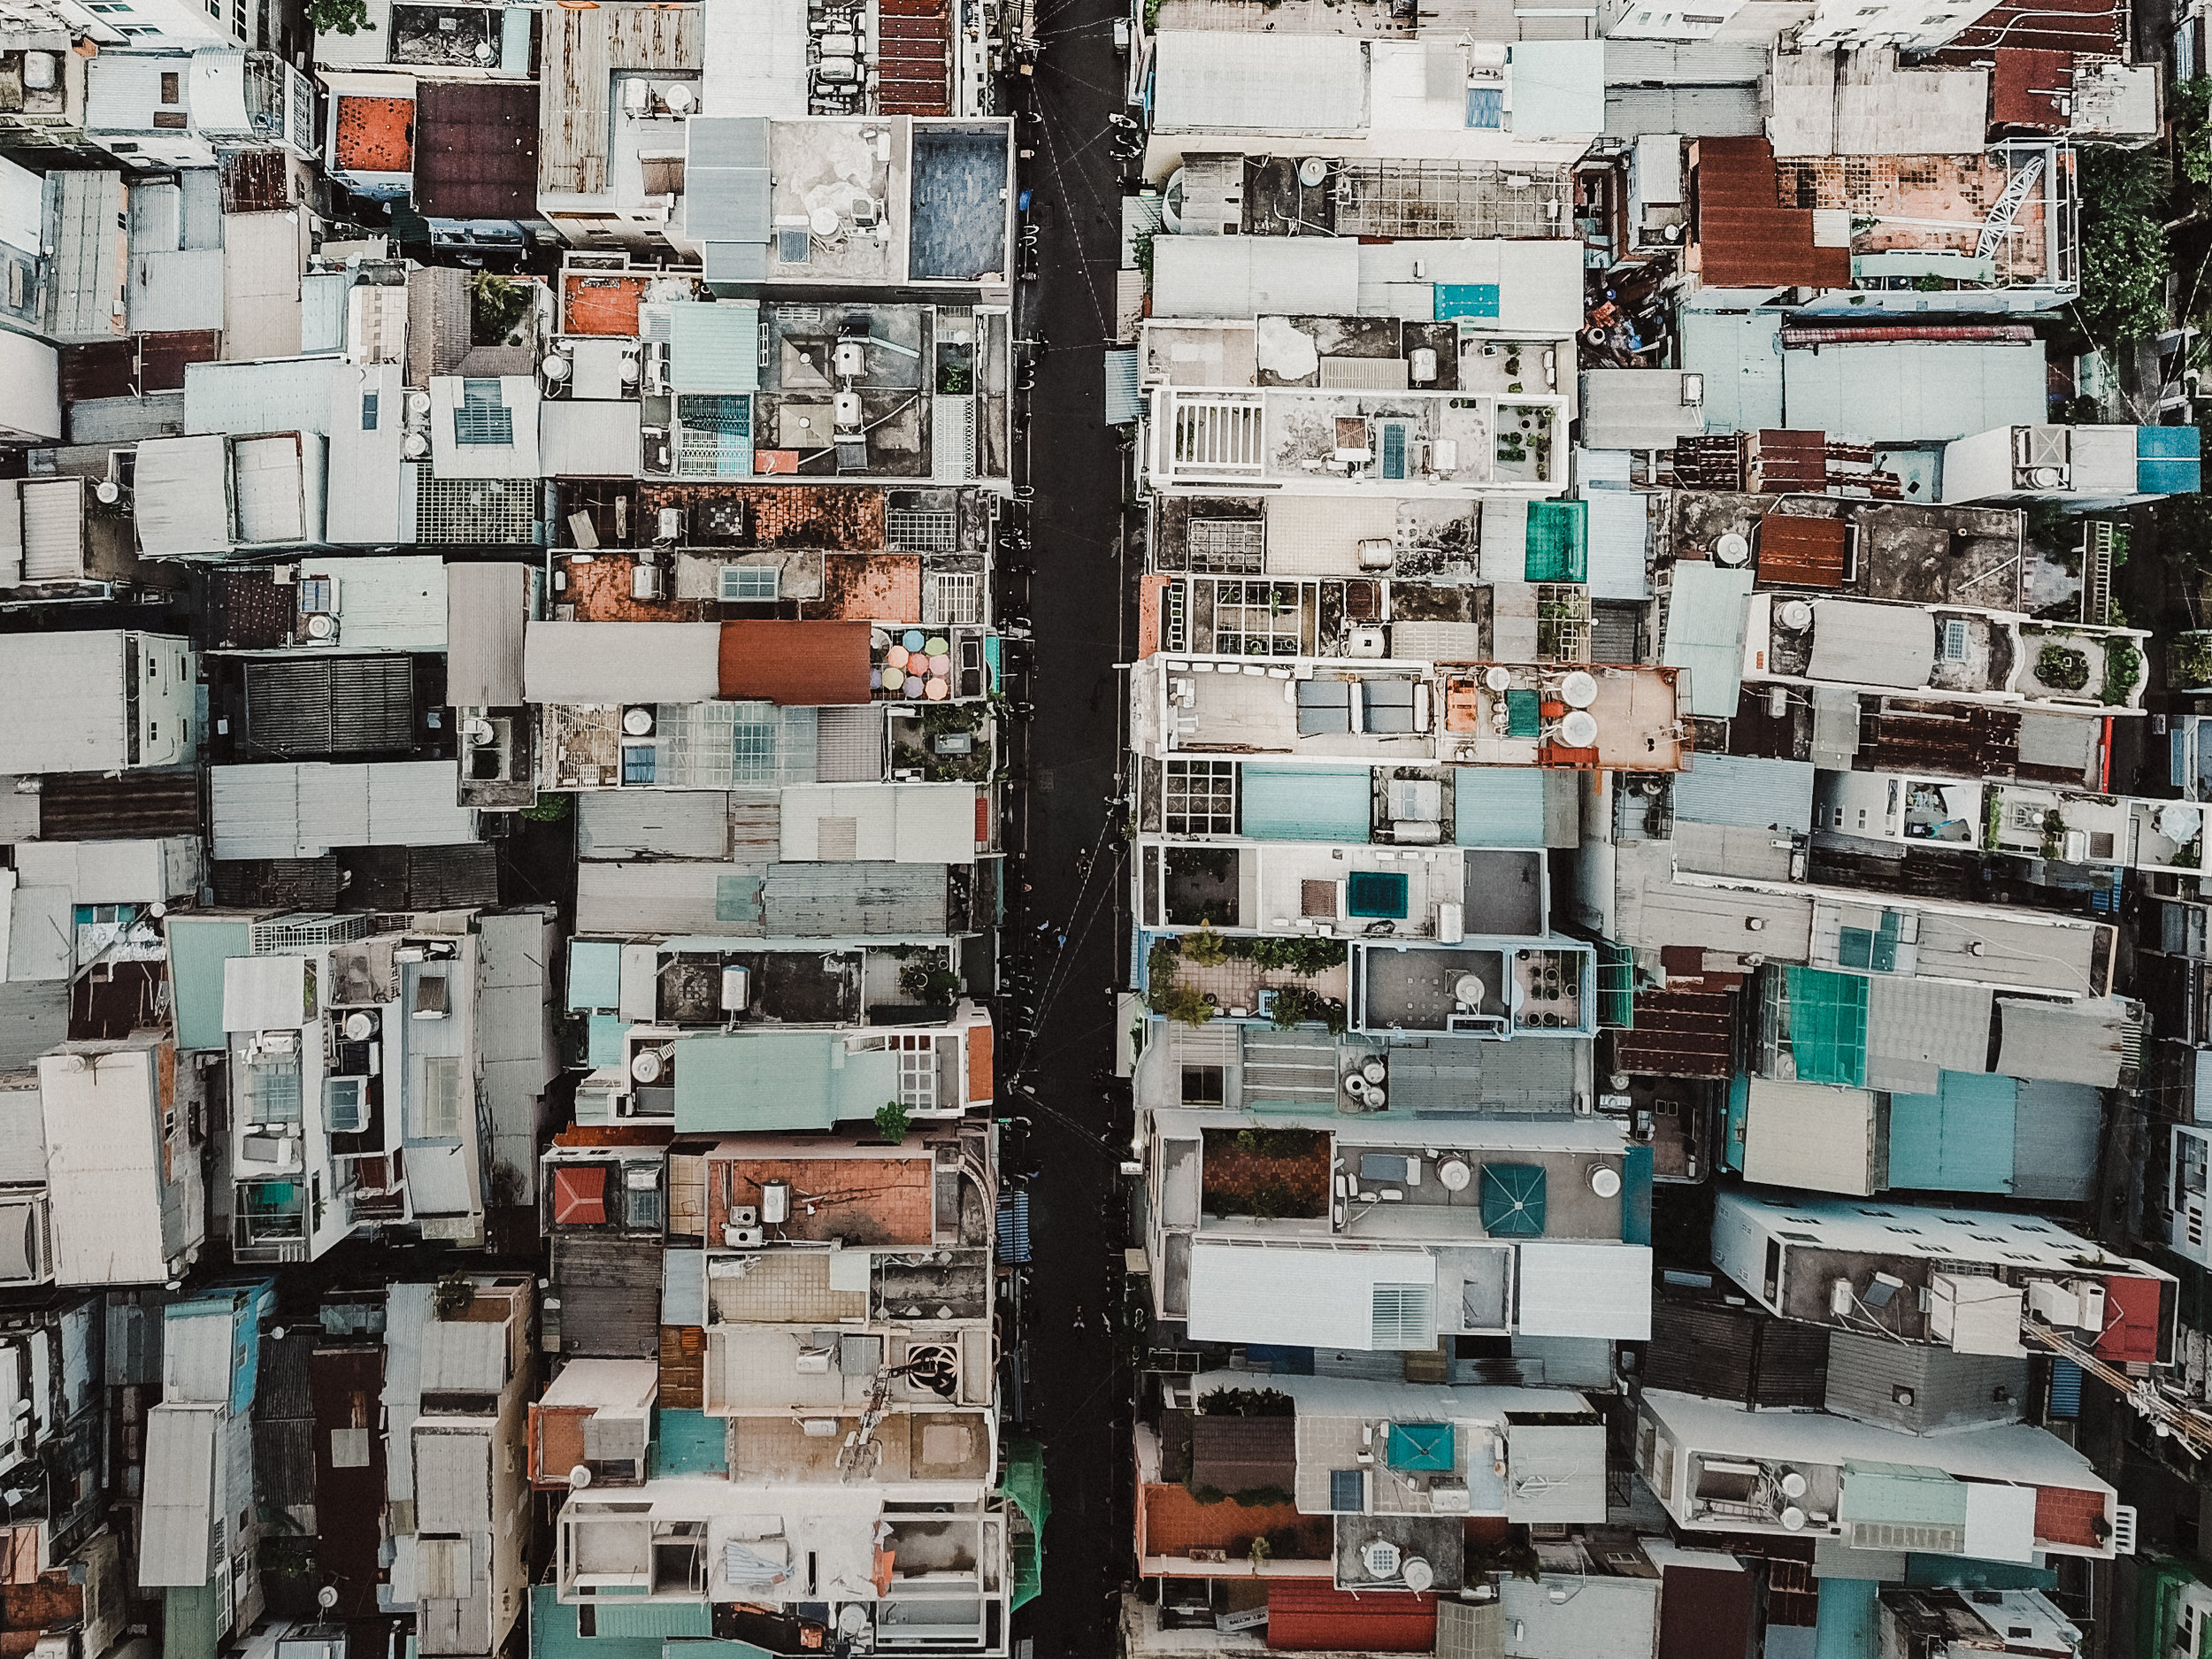 Collaborative Resilience Evidence and Action in Cities Characterized by Informality - · Itad, in partnership with 100 Resilient Cities – pioneered by The Rockefeller Foundation (100RC), and Slum Dwellers International (SDI).